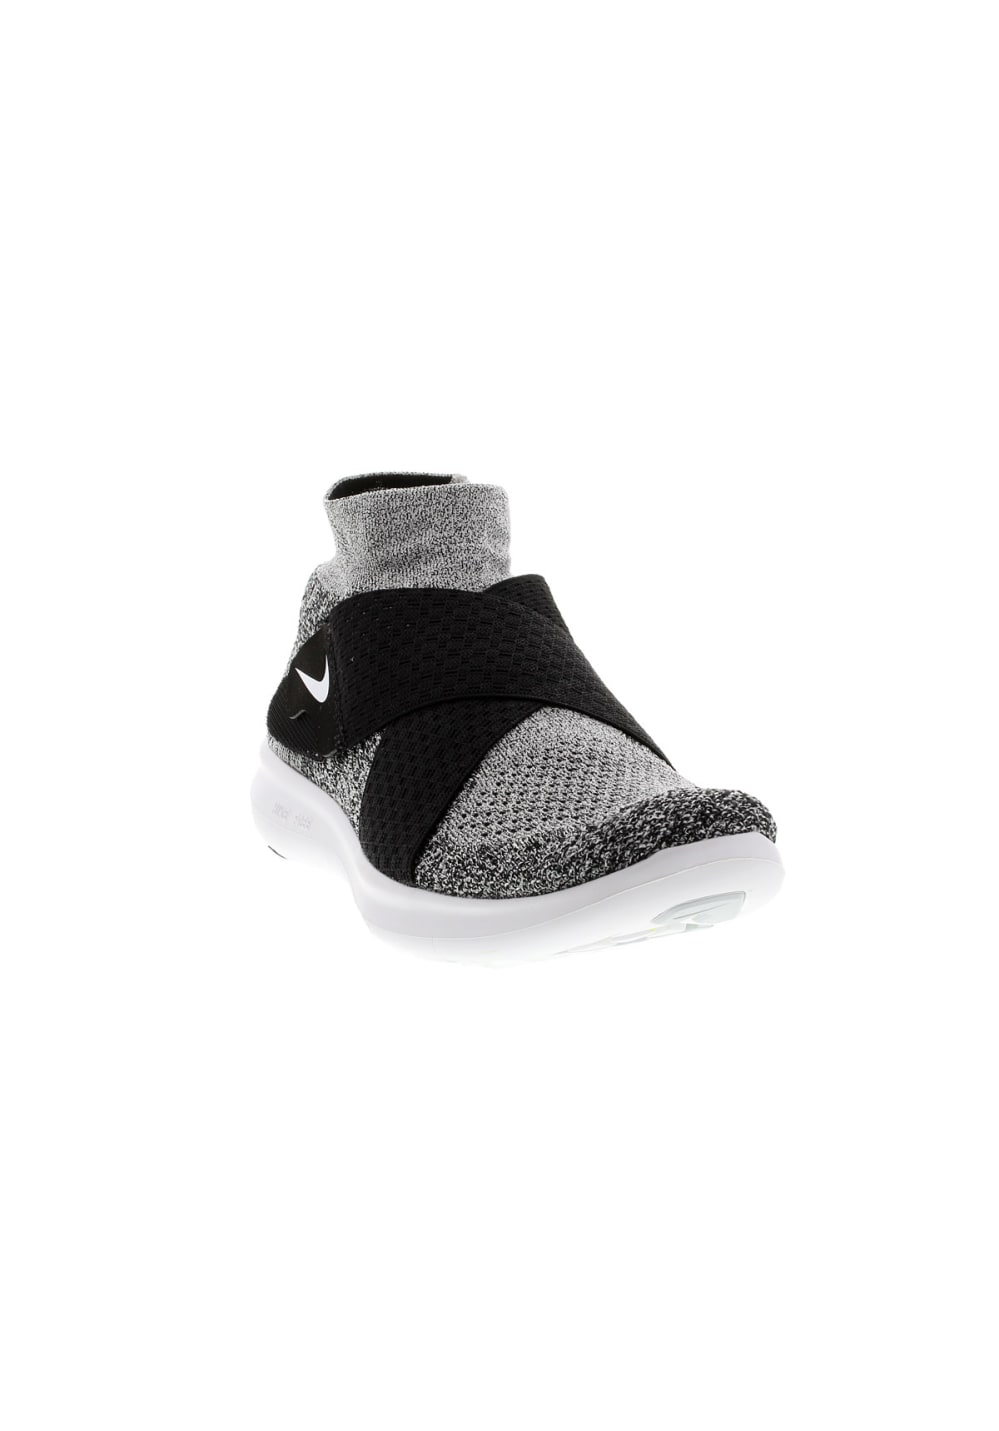 Nike Free RN Motion Flyknit 2017 Chaussures running pour Homme Gris